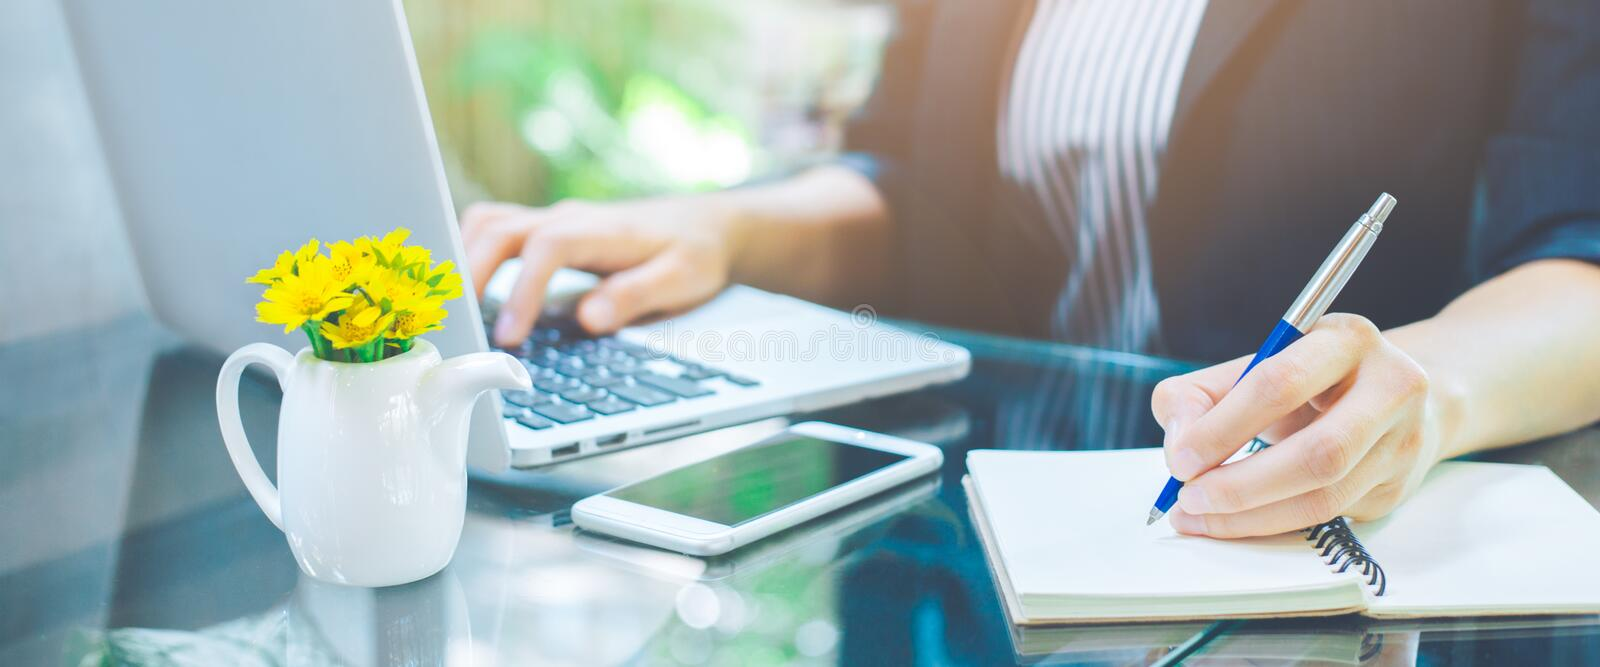 Business woman hand is writing notebook with a pen and using a laptop computer in the office stock photos